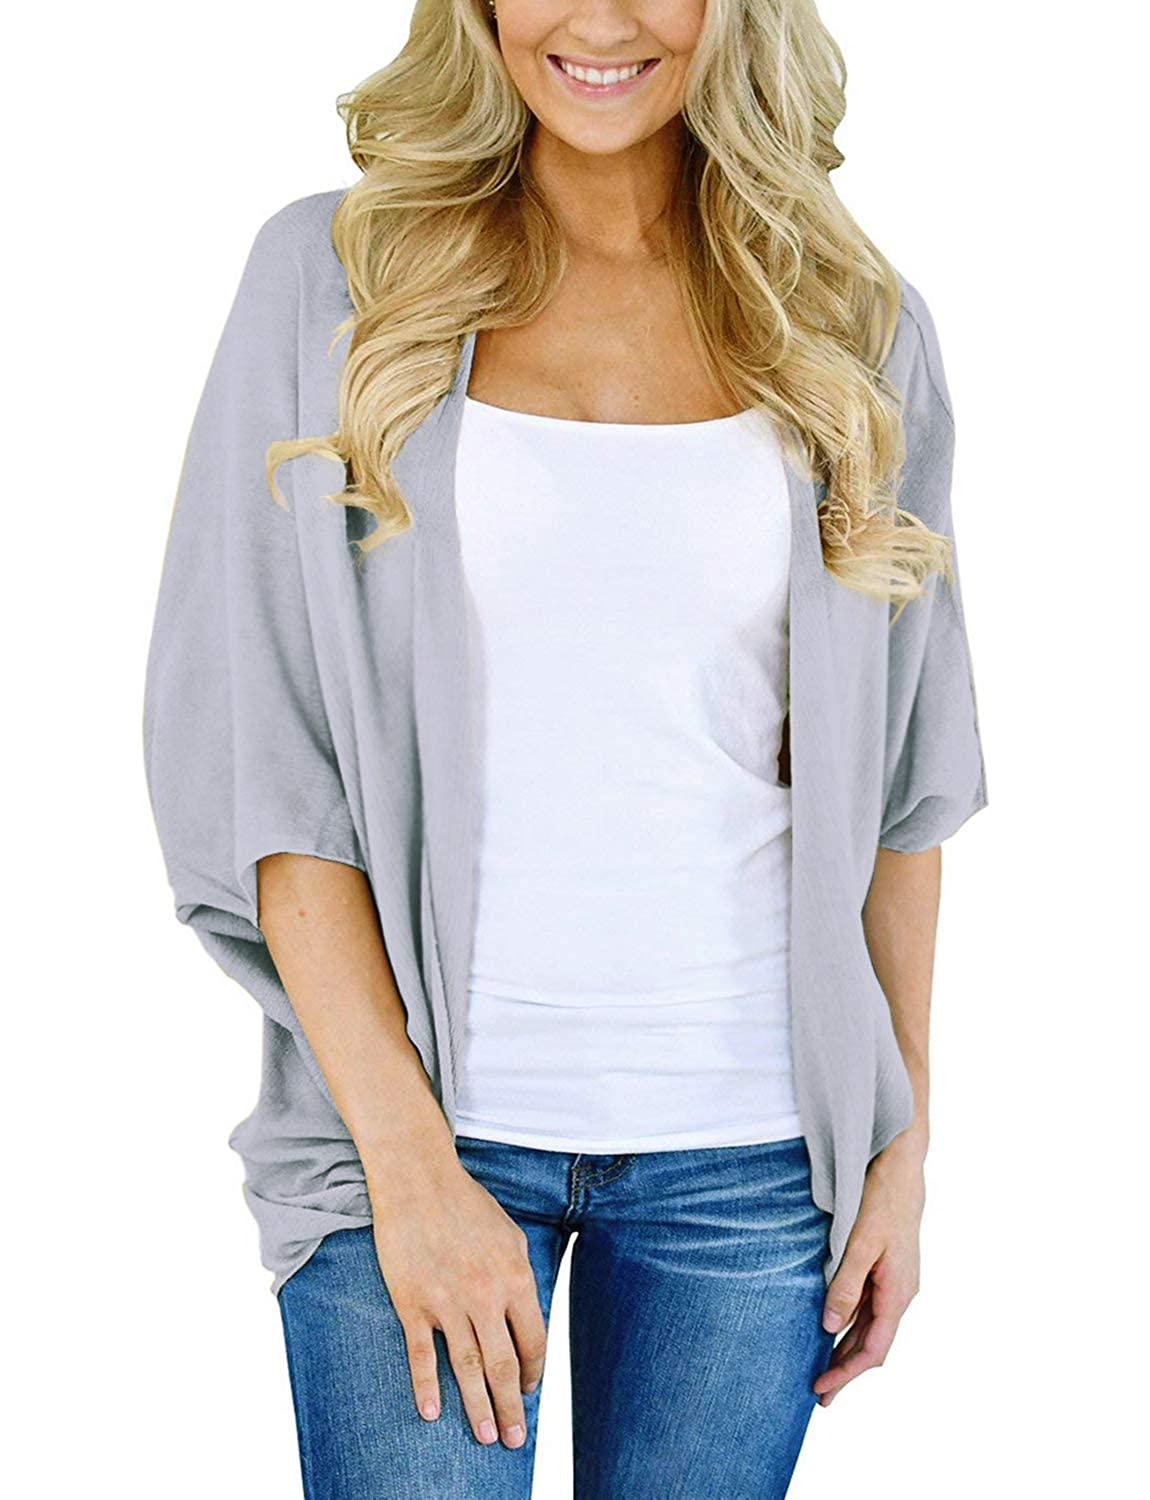 Lightweight Fall Cardigan for Women 3/4 Sleeve Solid Color Kimono Cover Up Top